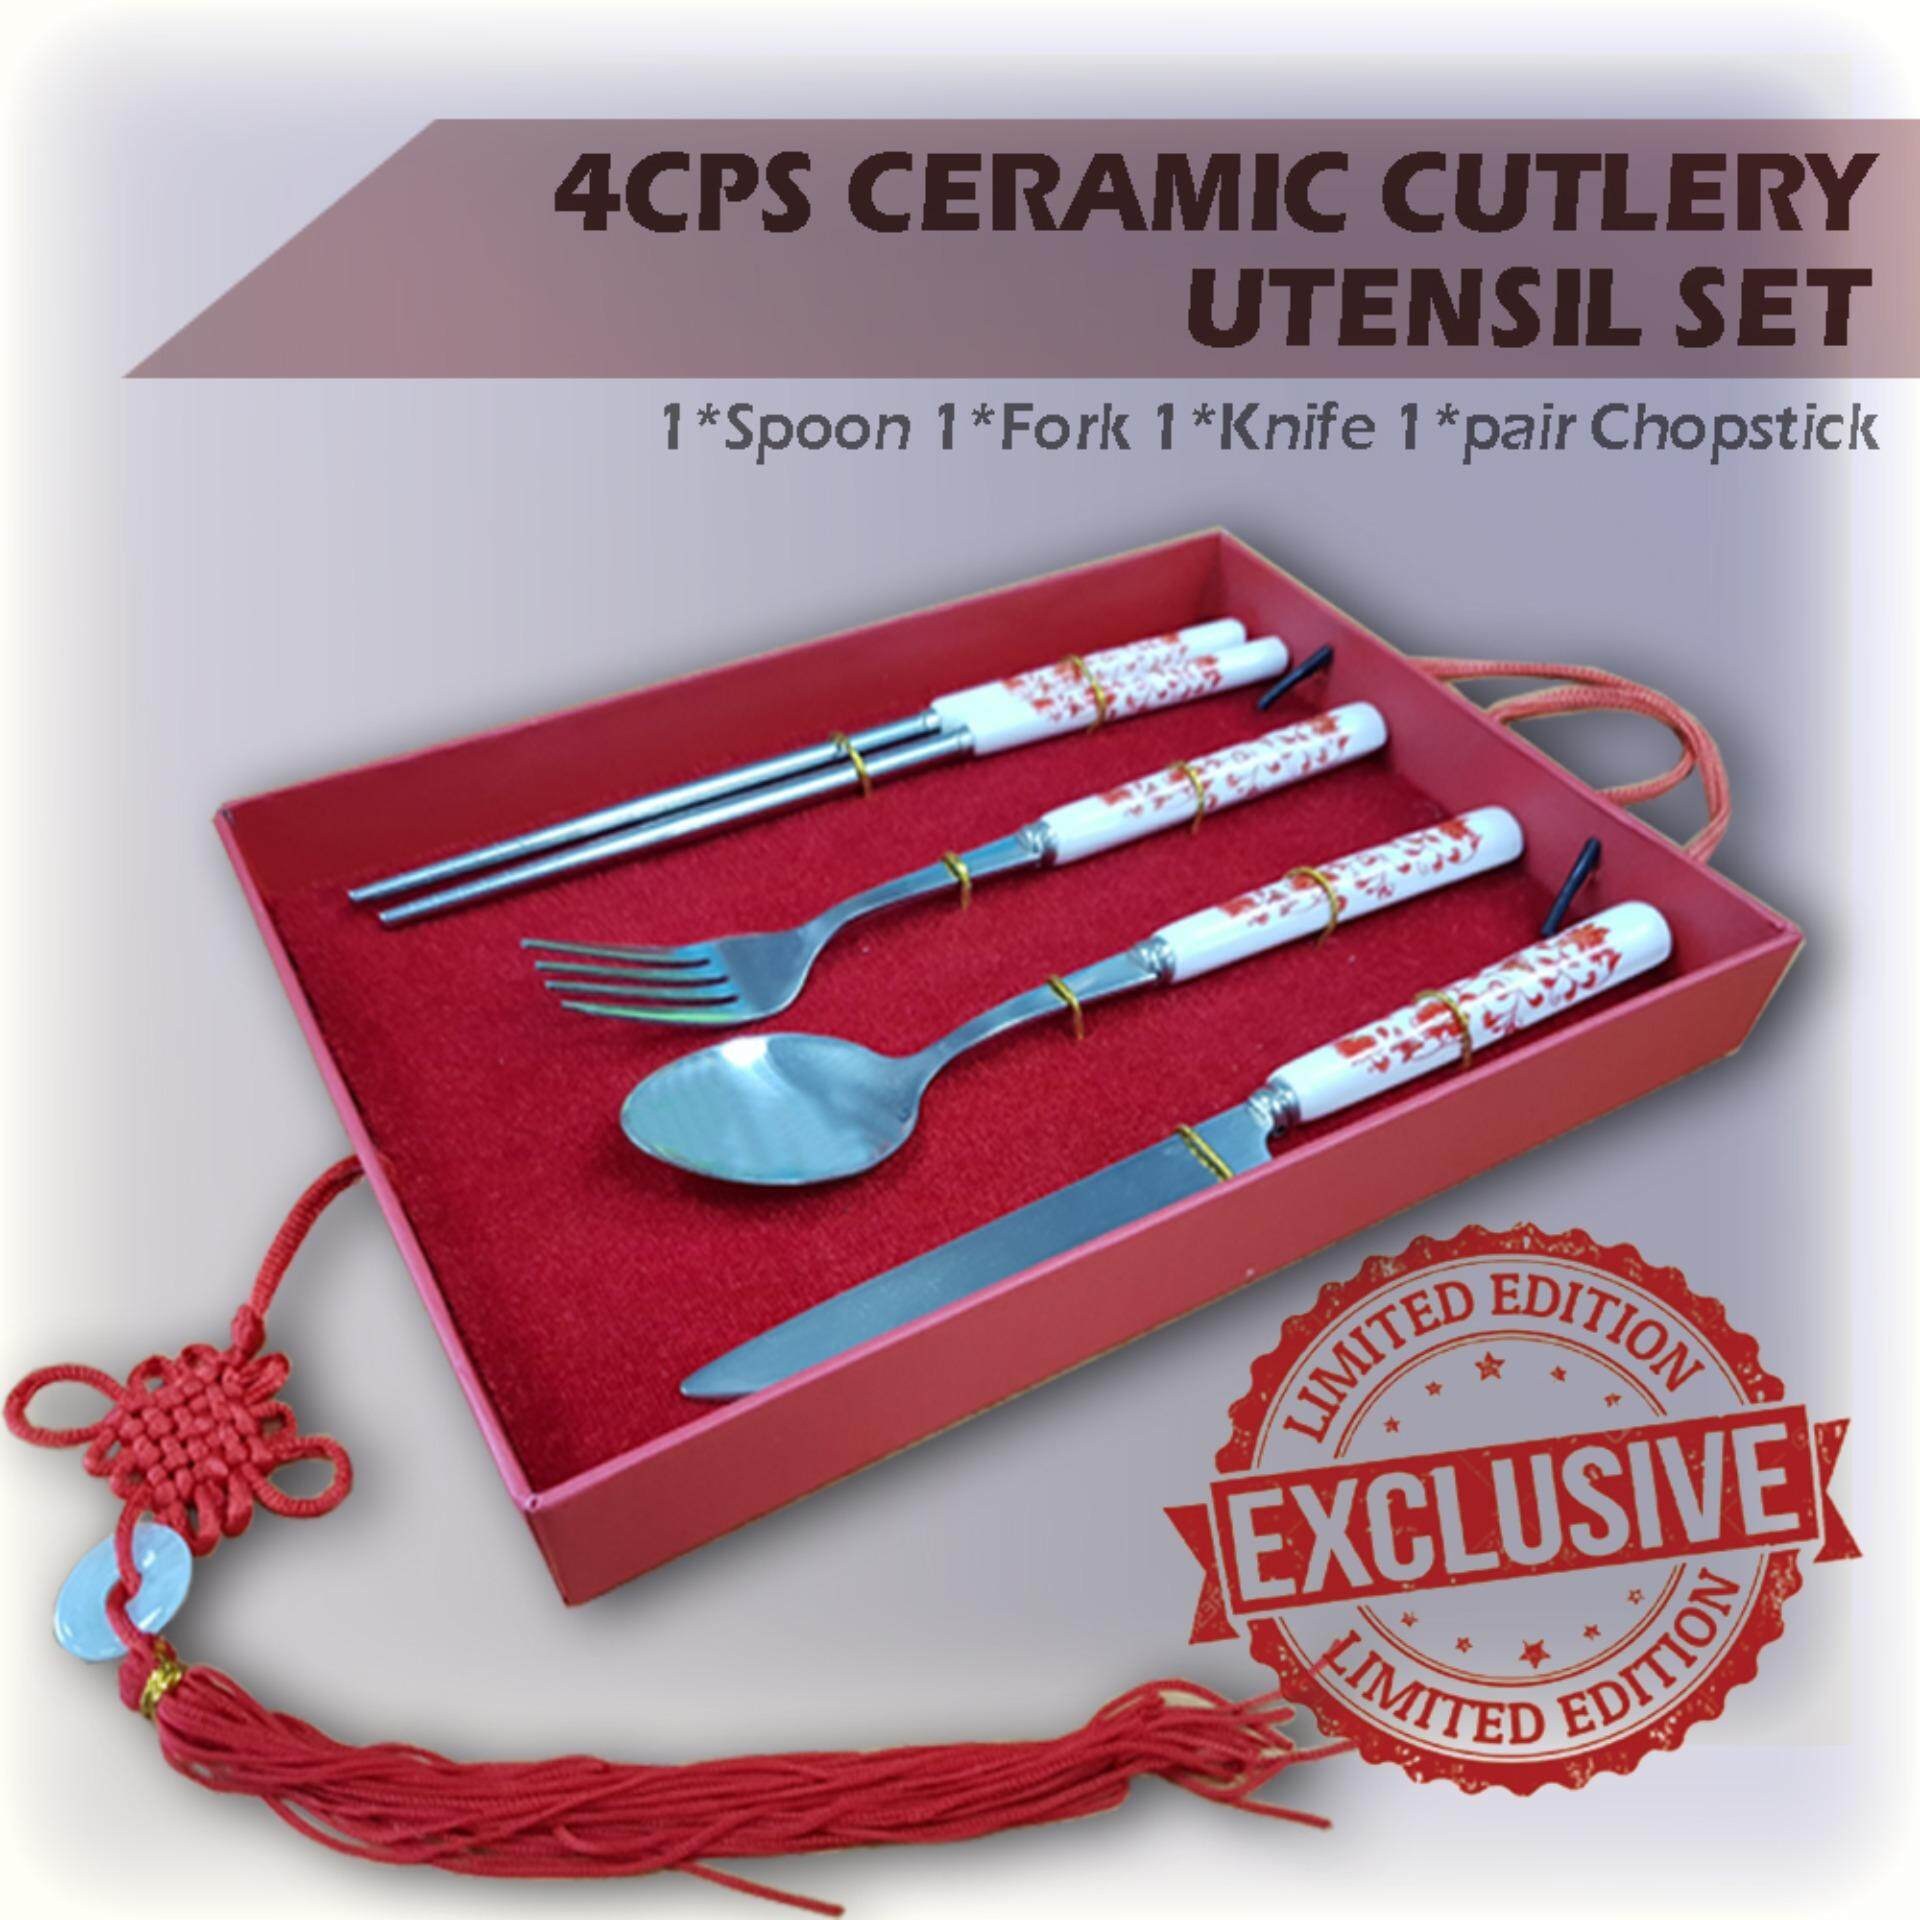 [Ready Stock] BCG Malaysia 4PCS Ceramic Cutlery Utensil Set with Stainless Steel Spoon and Fork and Knife and 1 pair Chopstick